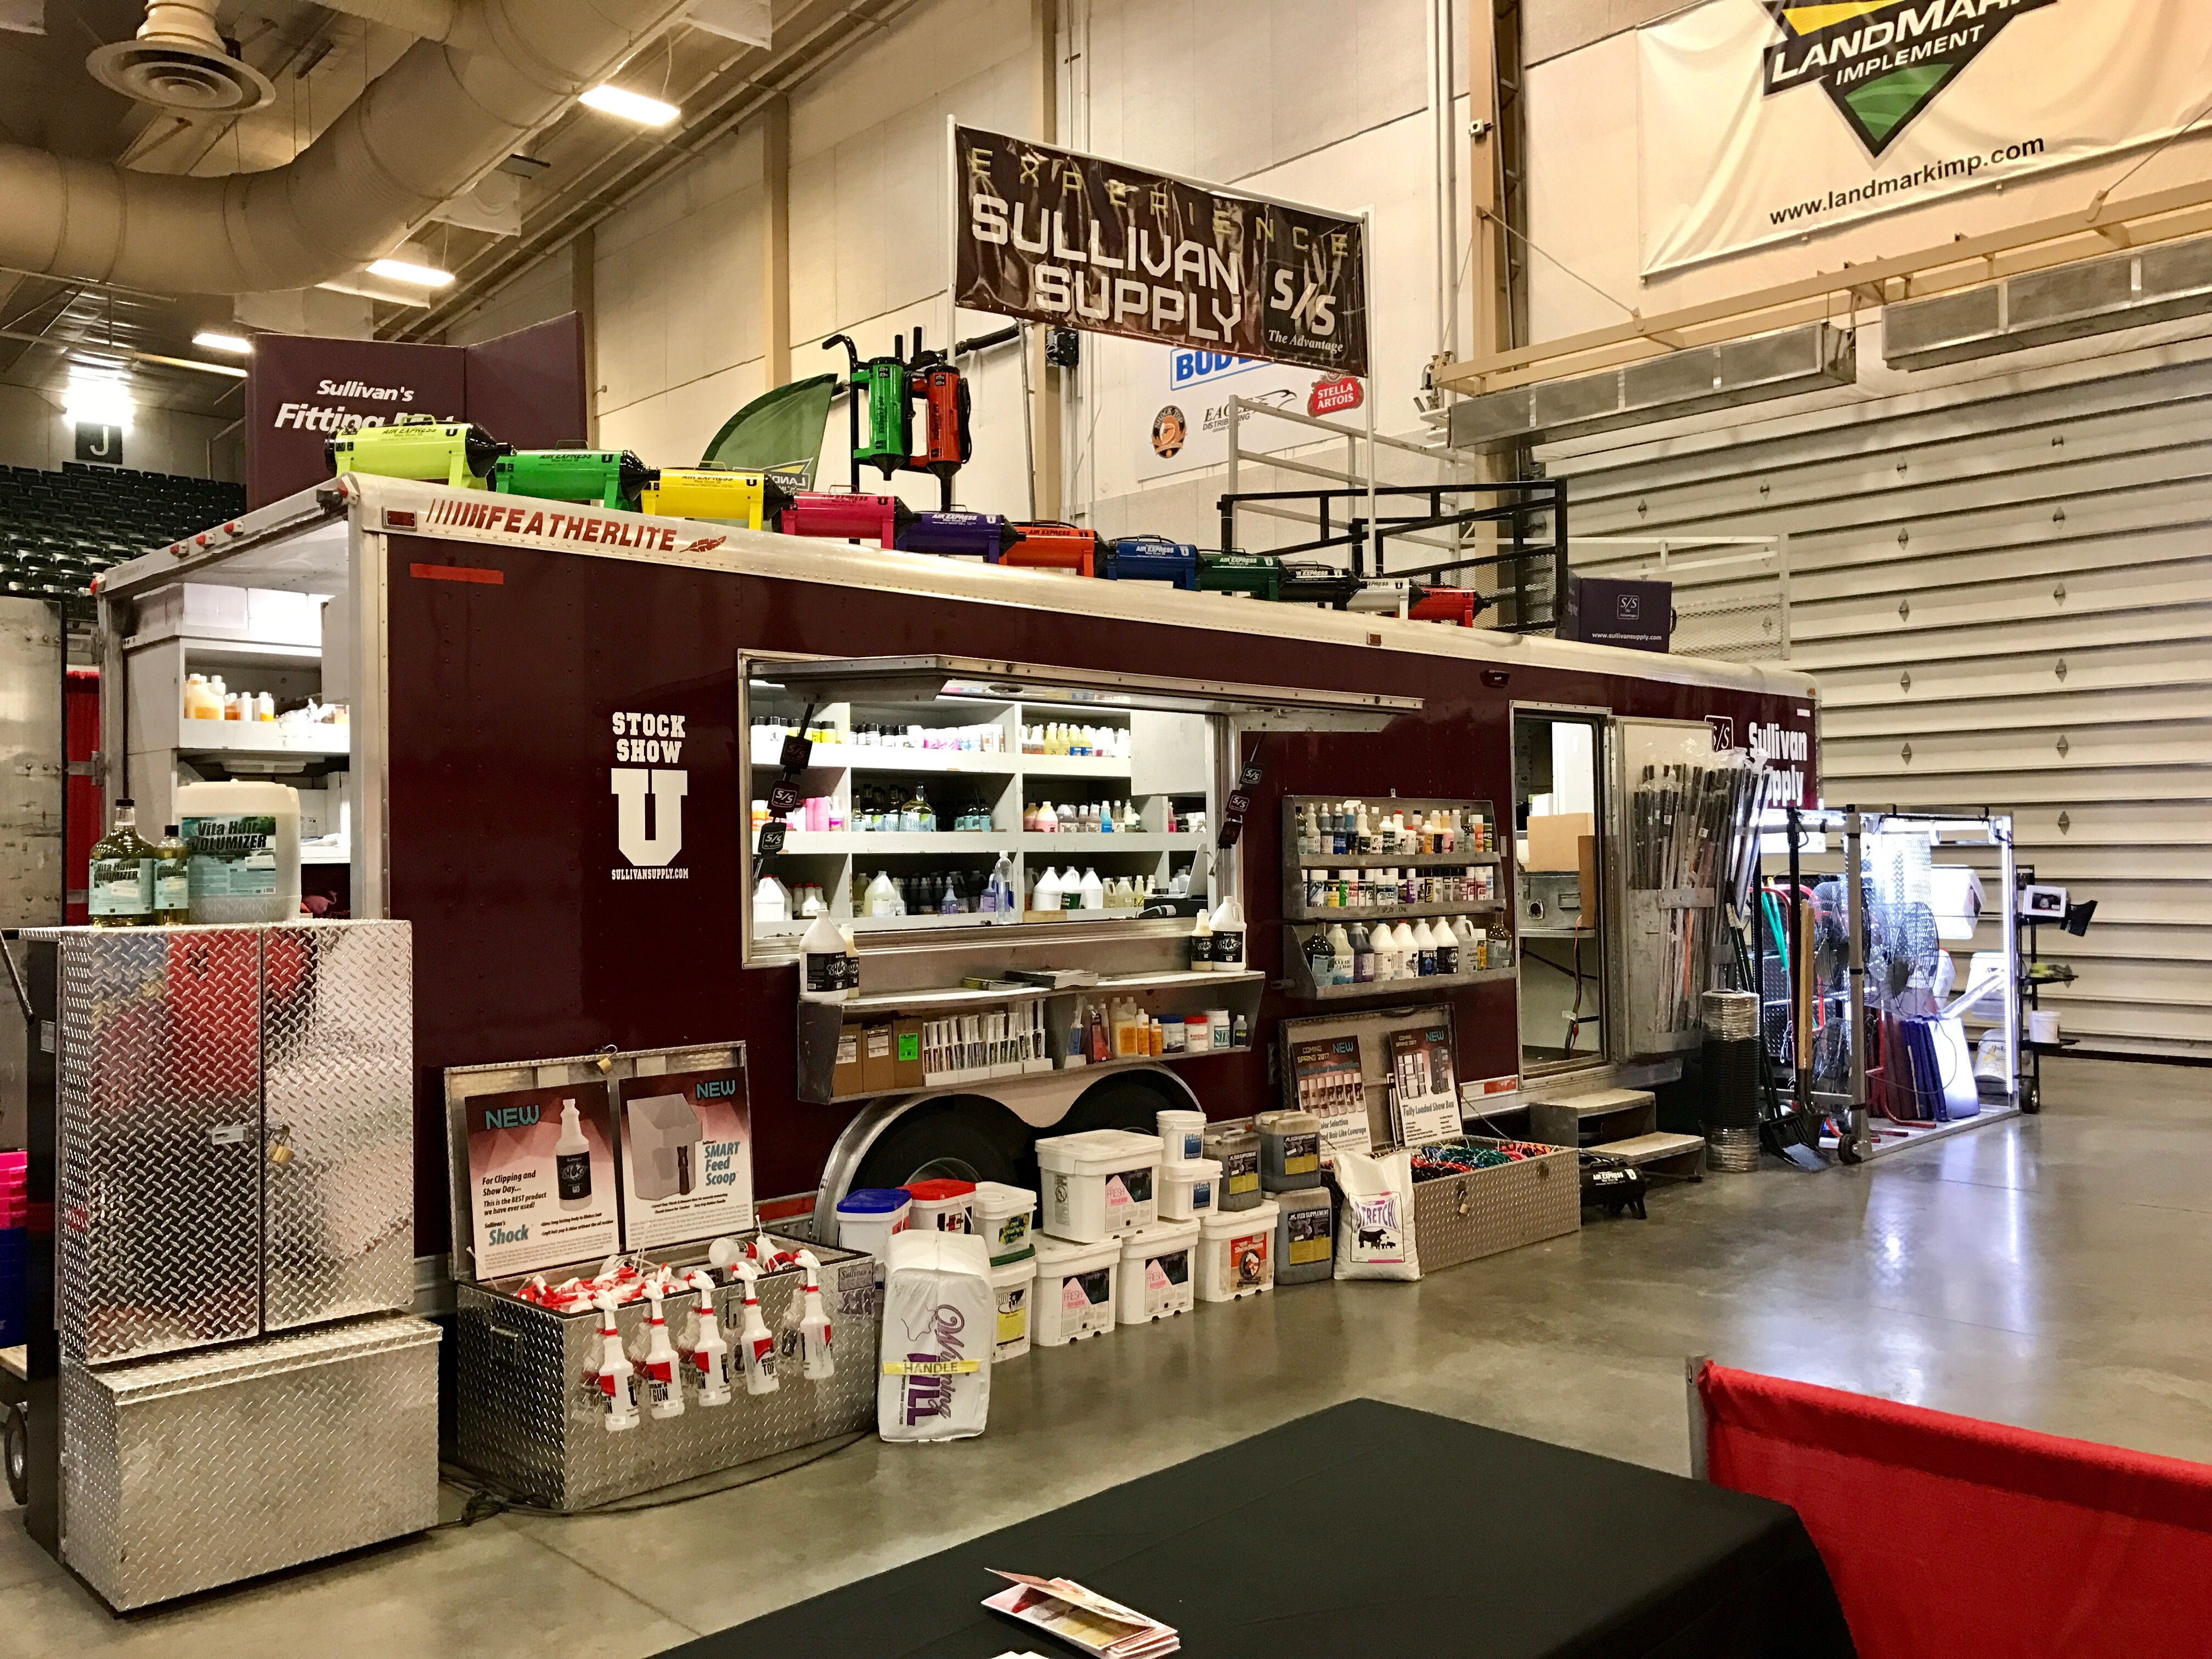 Stop By And See Josh Nelson And Crew At The Nebraska Cattlemenu0027s Classic In  Kearney, Nebraska This Week! Stock Up On All Your Favorite Sullivan Supply  ...